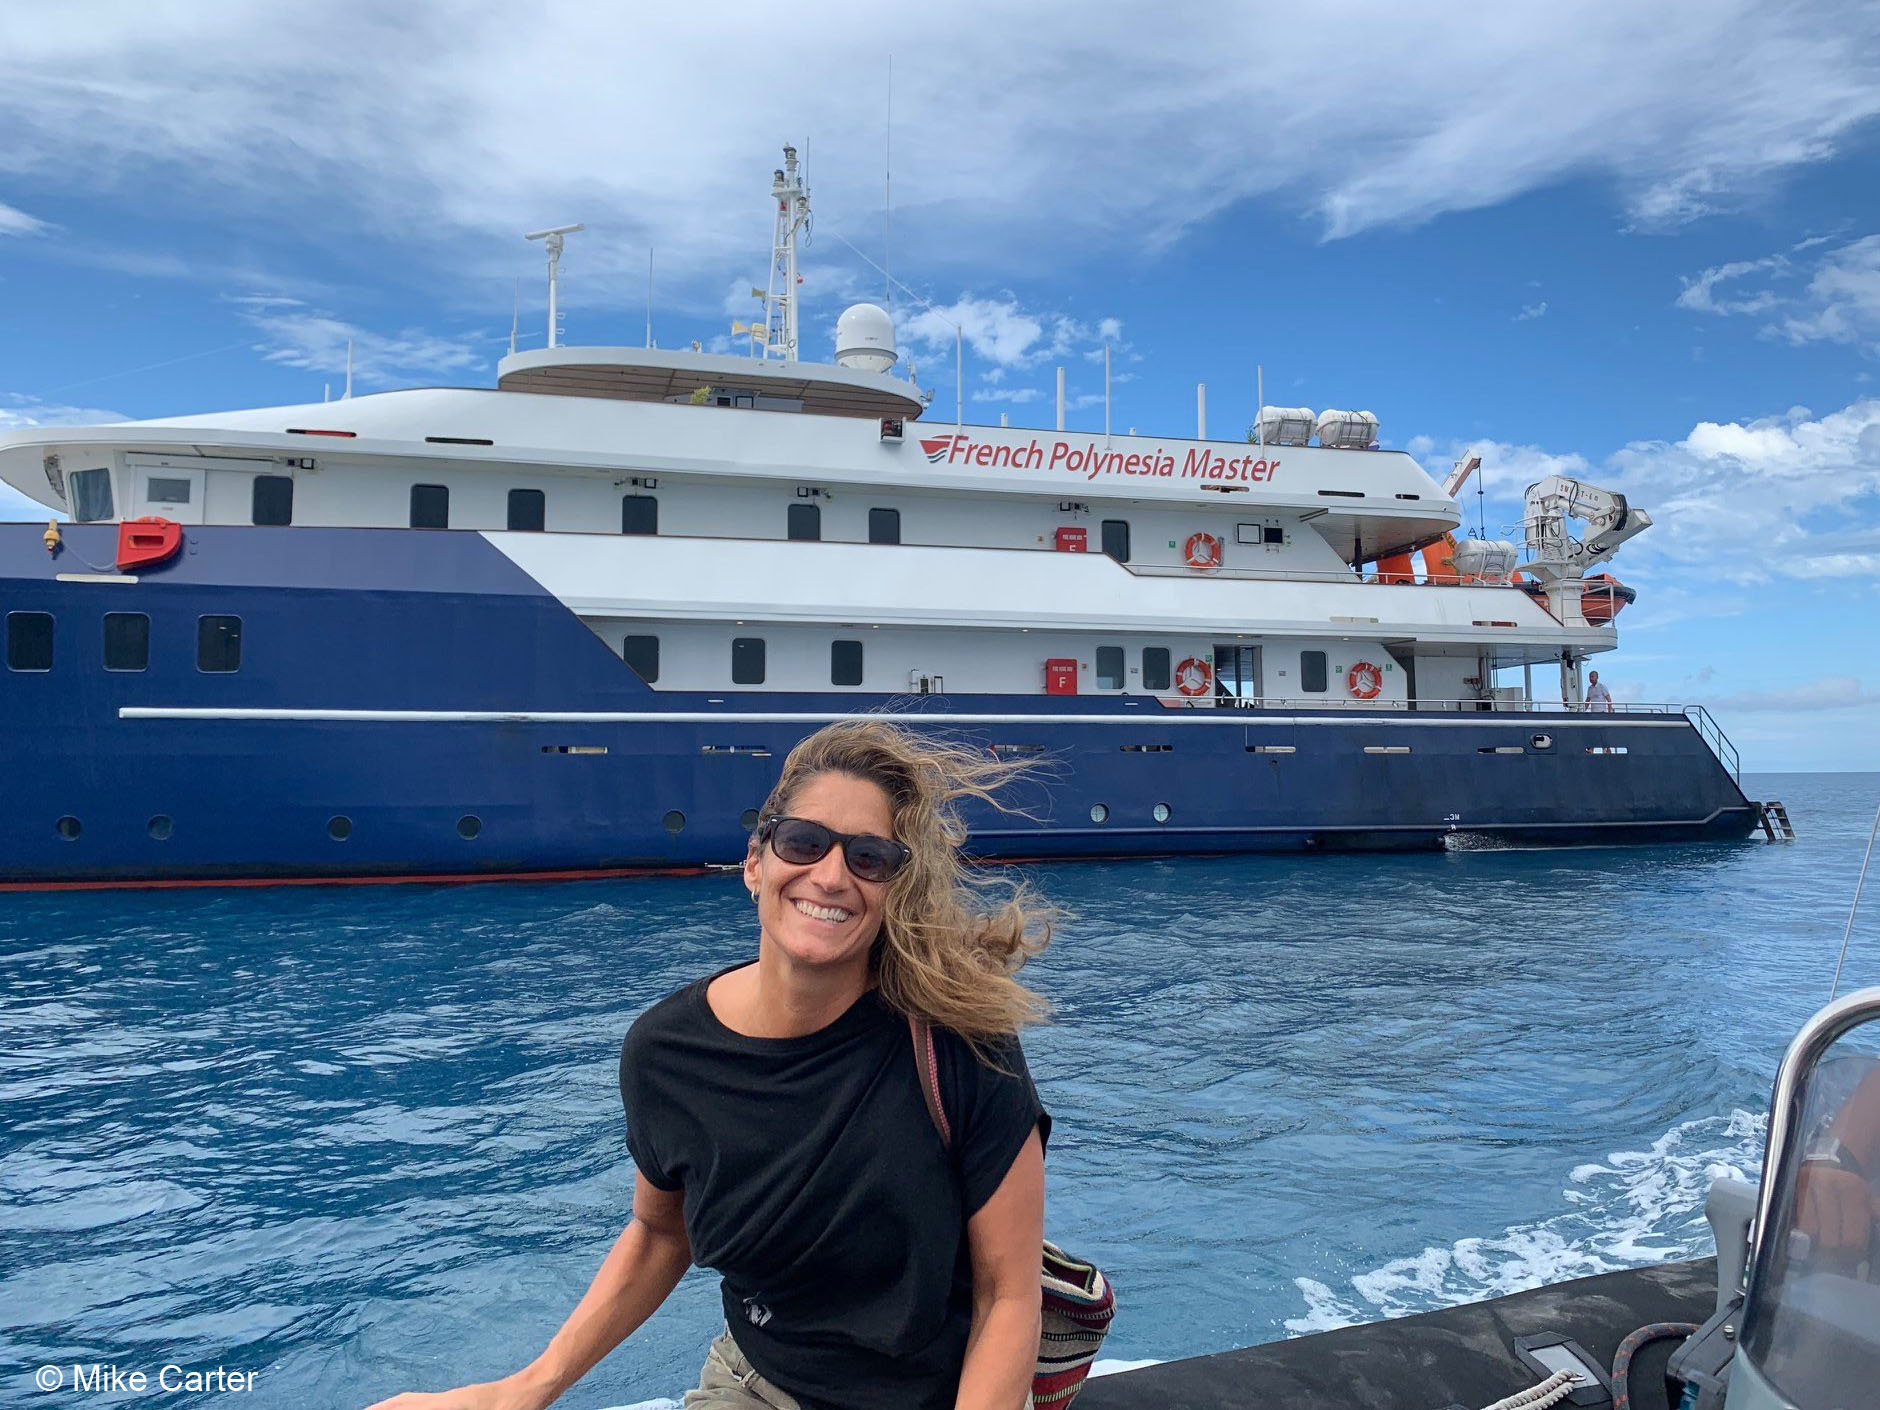 Francesca Diaco is a professional underwater photographer and the owner and operator of Fisheye Expeditions. She looks forward to welcoming you on an upcoming adventure!